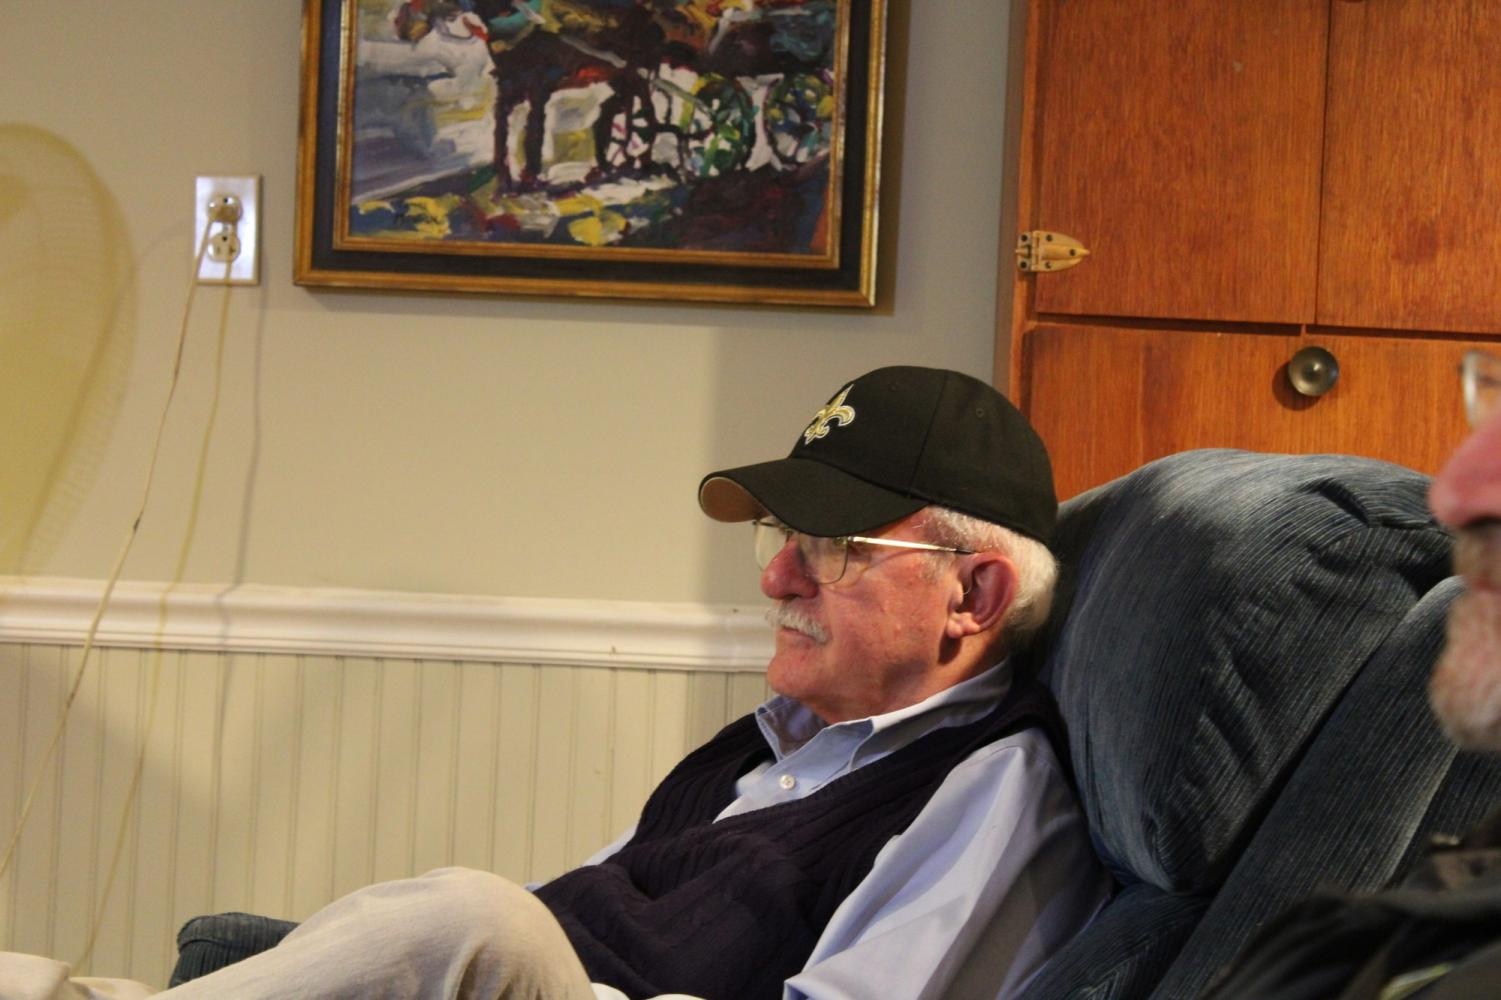 Rev. Fred Kammer, S.J. enjoys the New Orleans Saints vs. Tampa Bay Buccaneers game on his recliner on November 17, 2019. Photo credit: Madison Mcloughlin